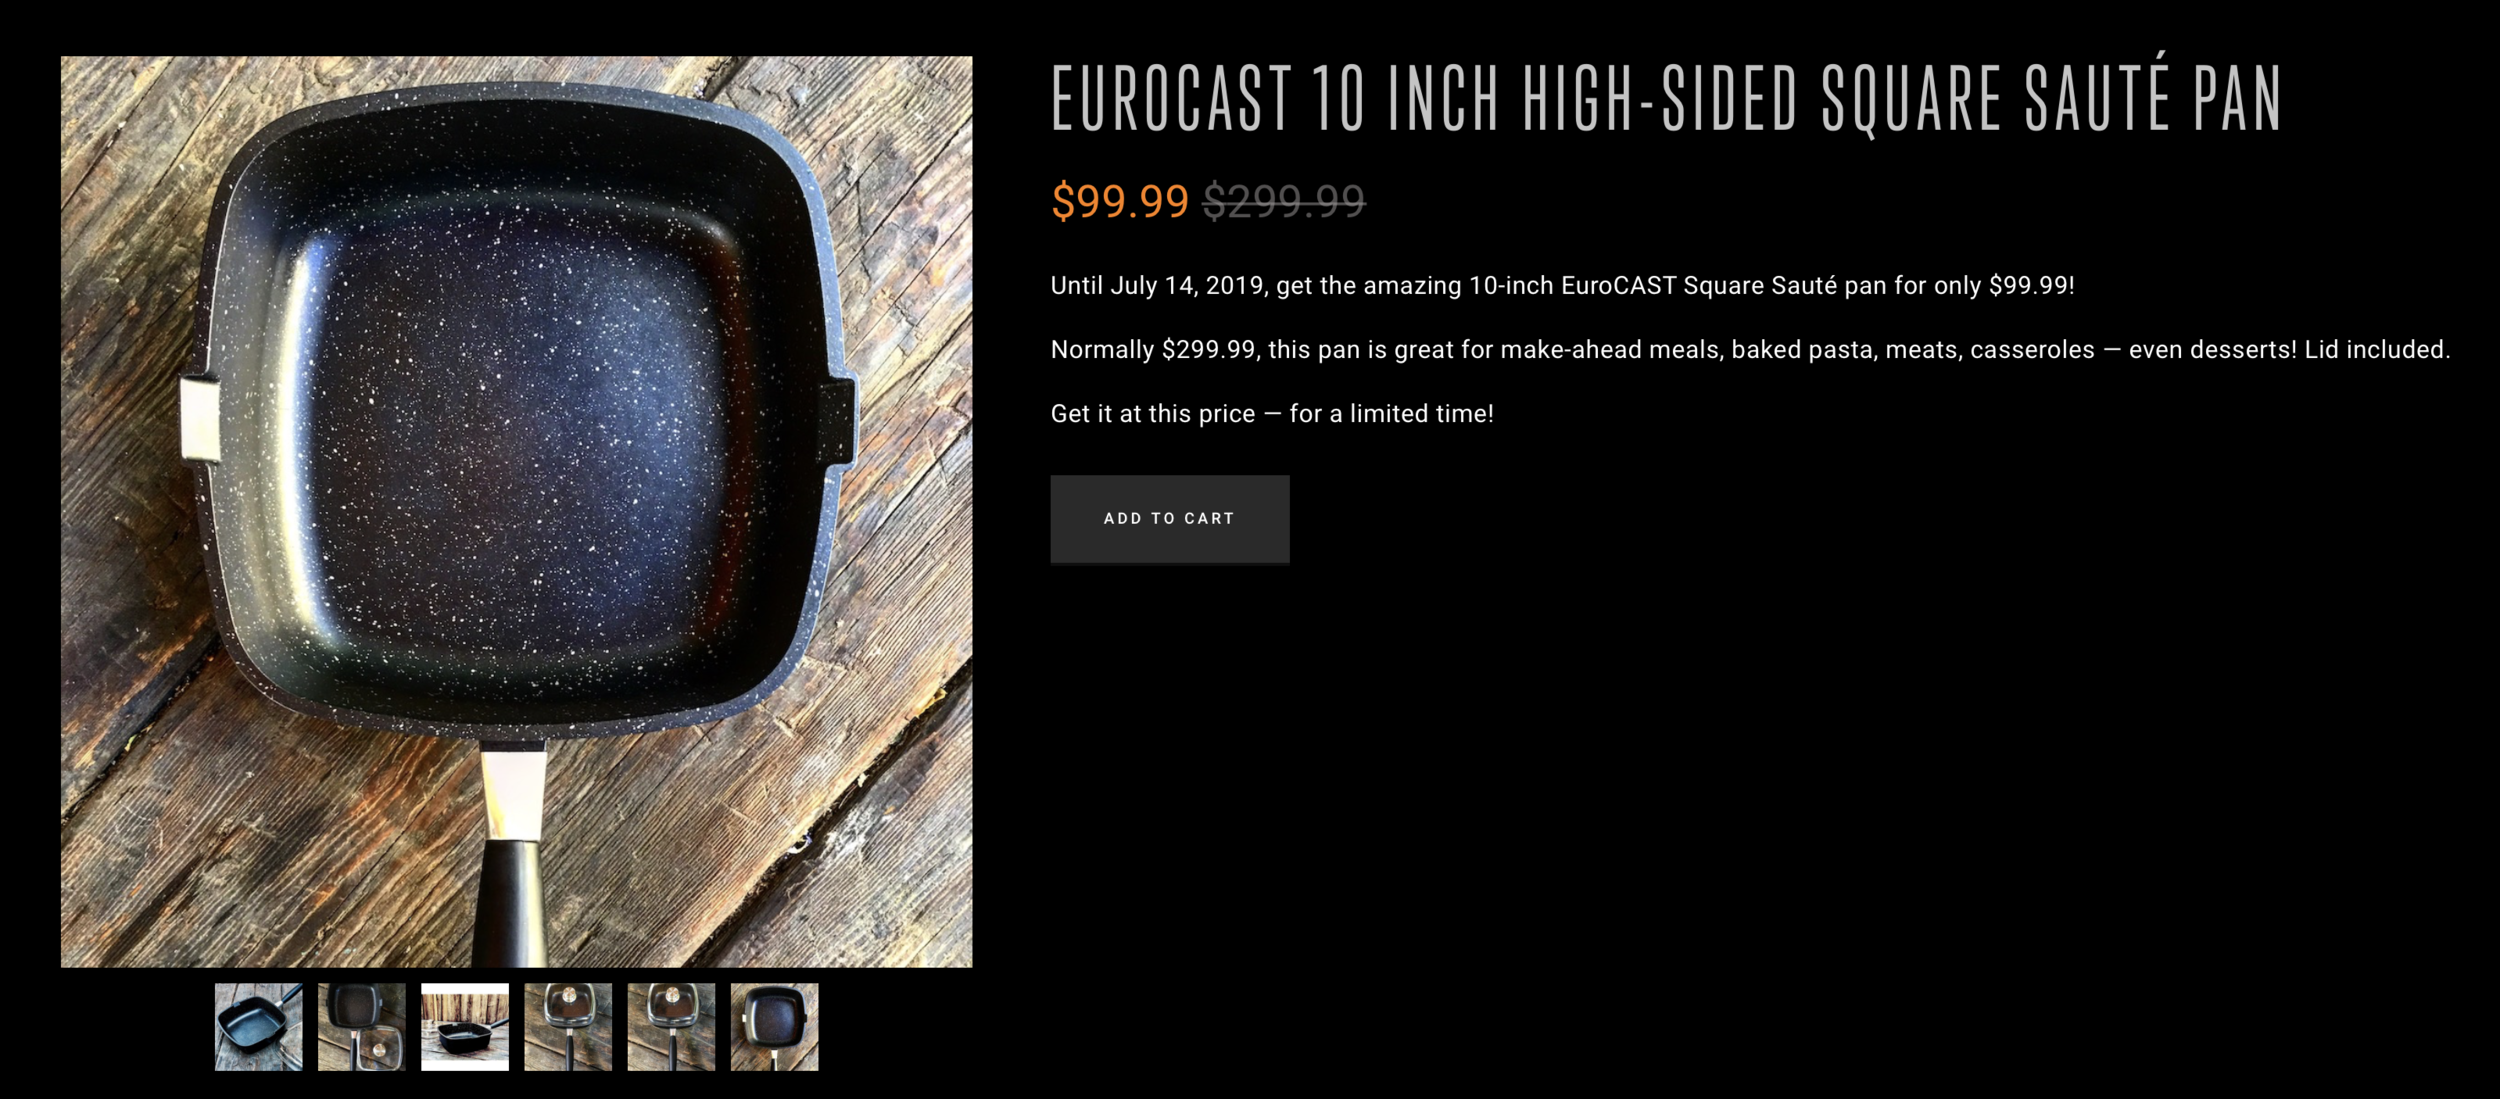 """For a limited time! Until July 14, 2019, get the 10"""" EuroCAST Square Saute pan with lid for $200 off! Was $299.99, now only $99.99."""